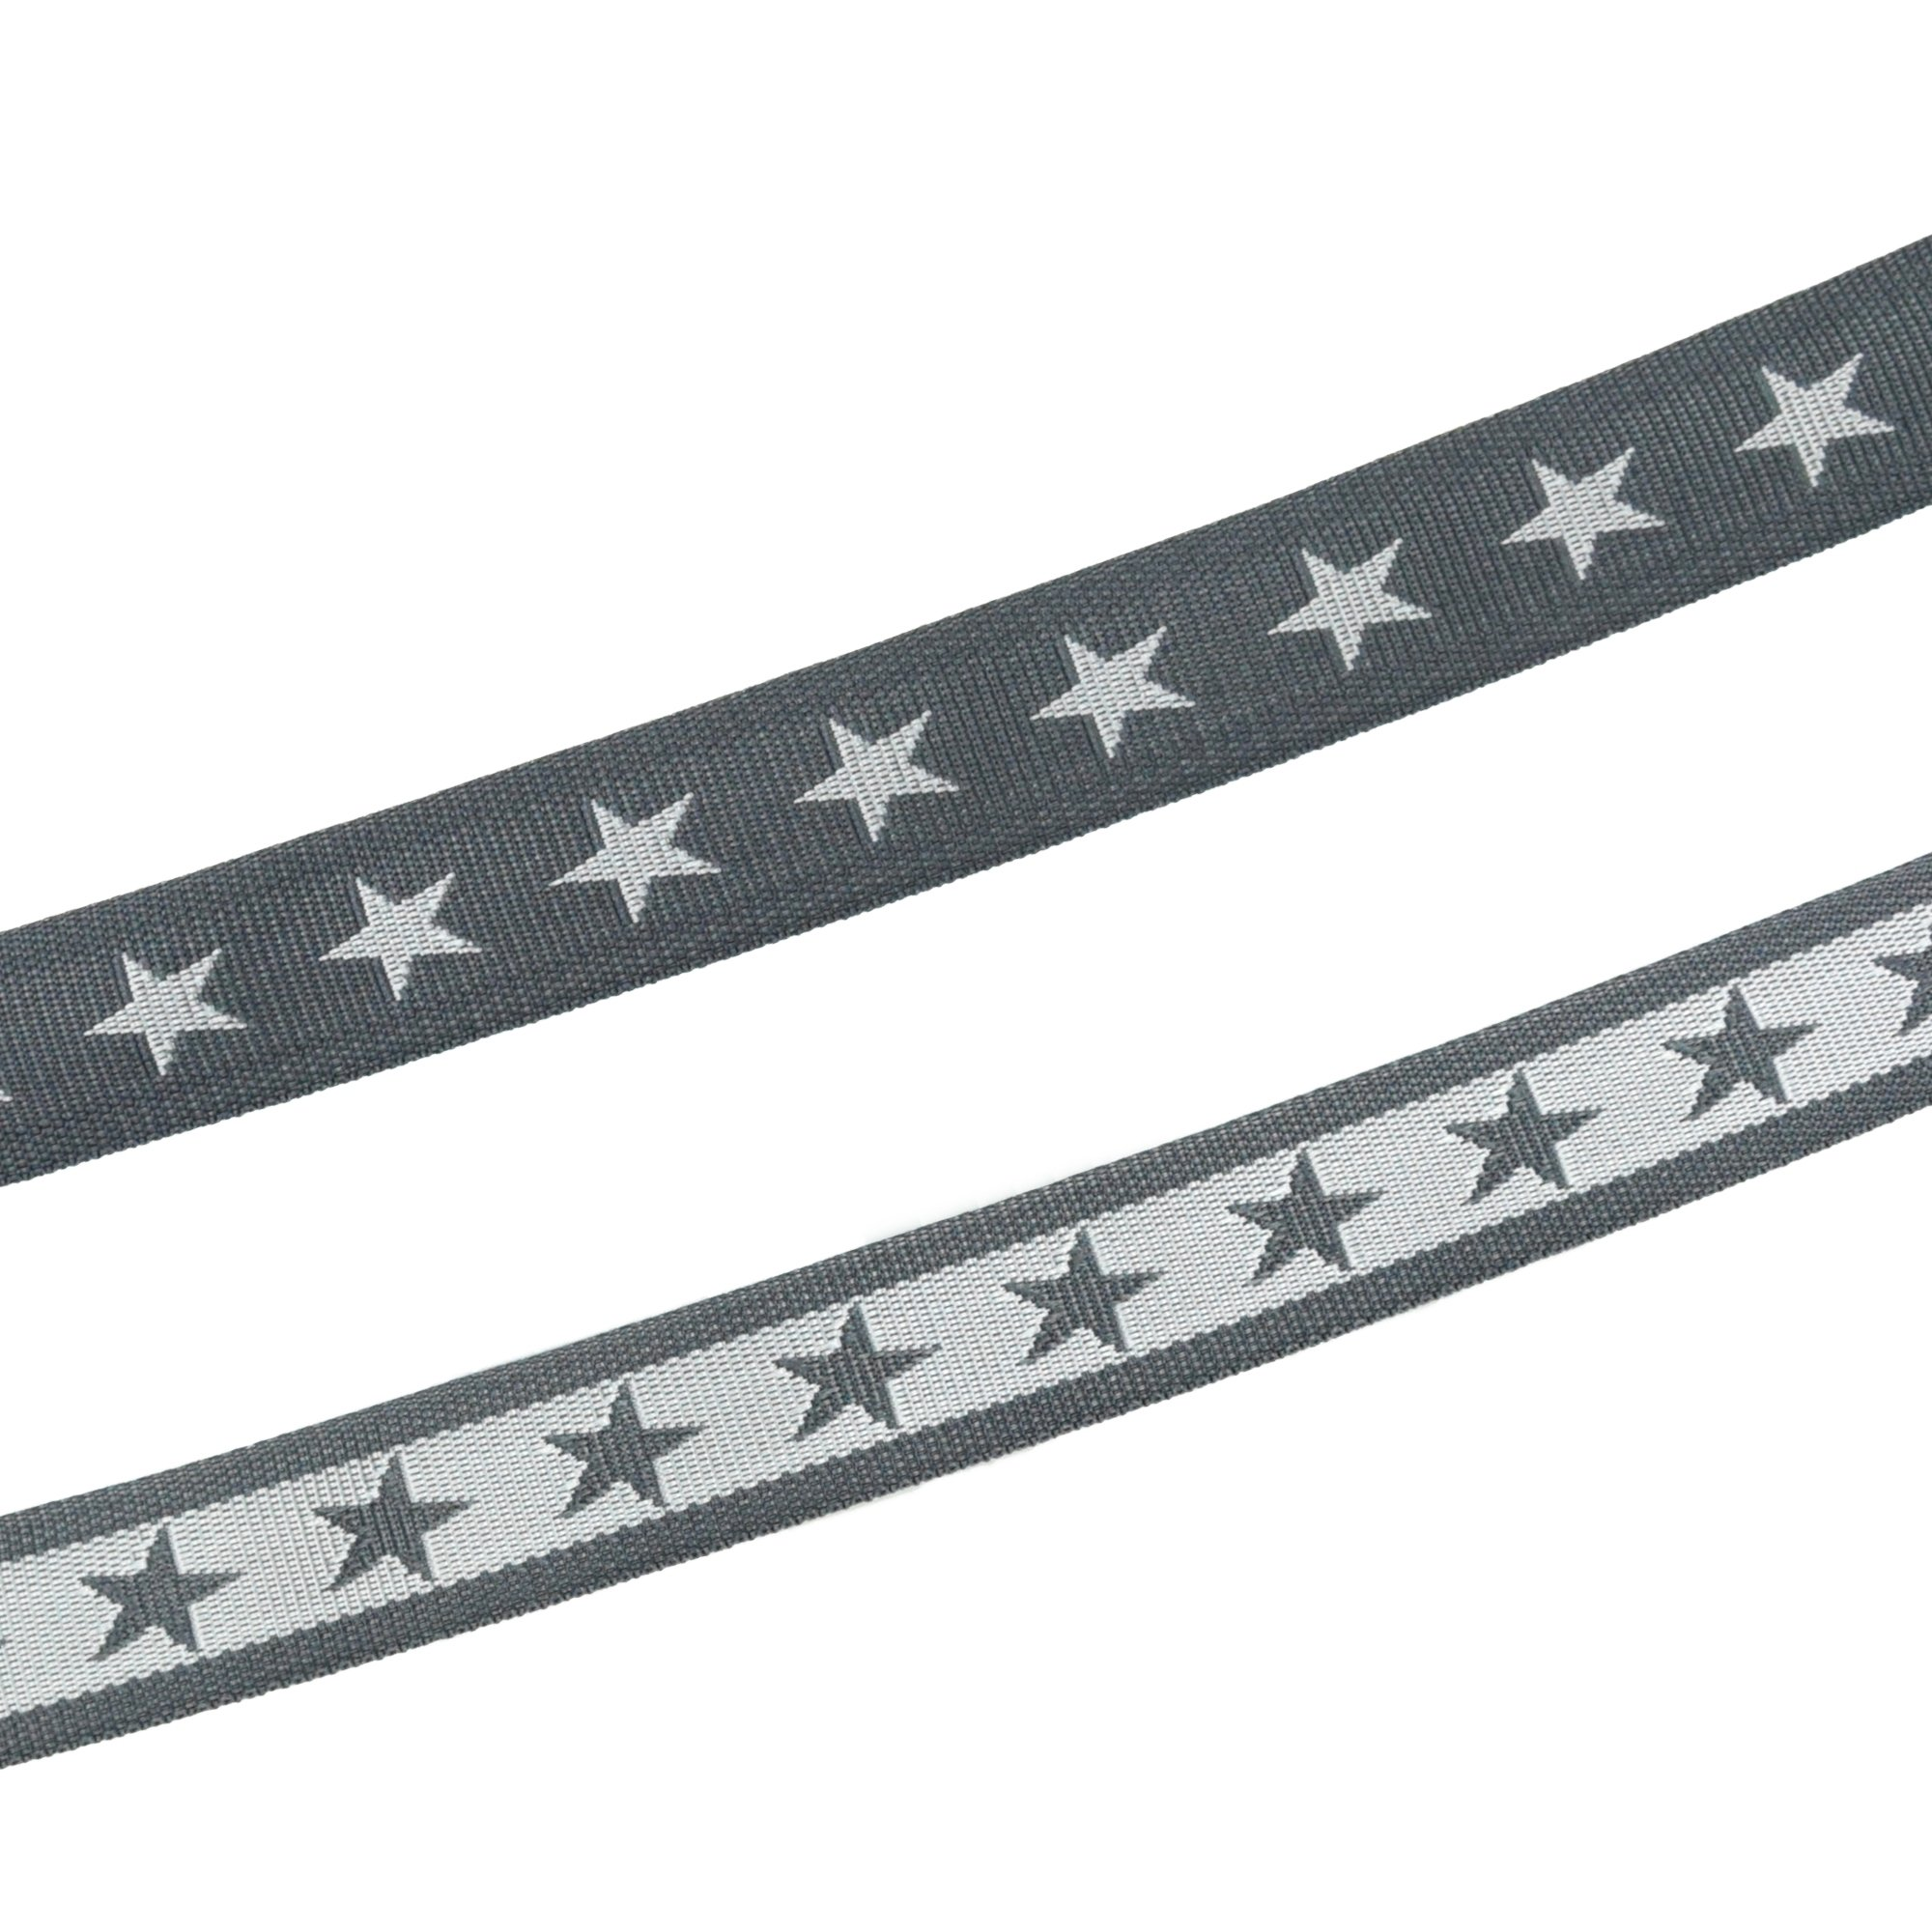 Bag-Webbing stars, dark grey